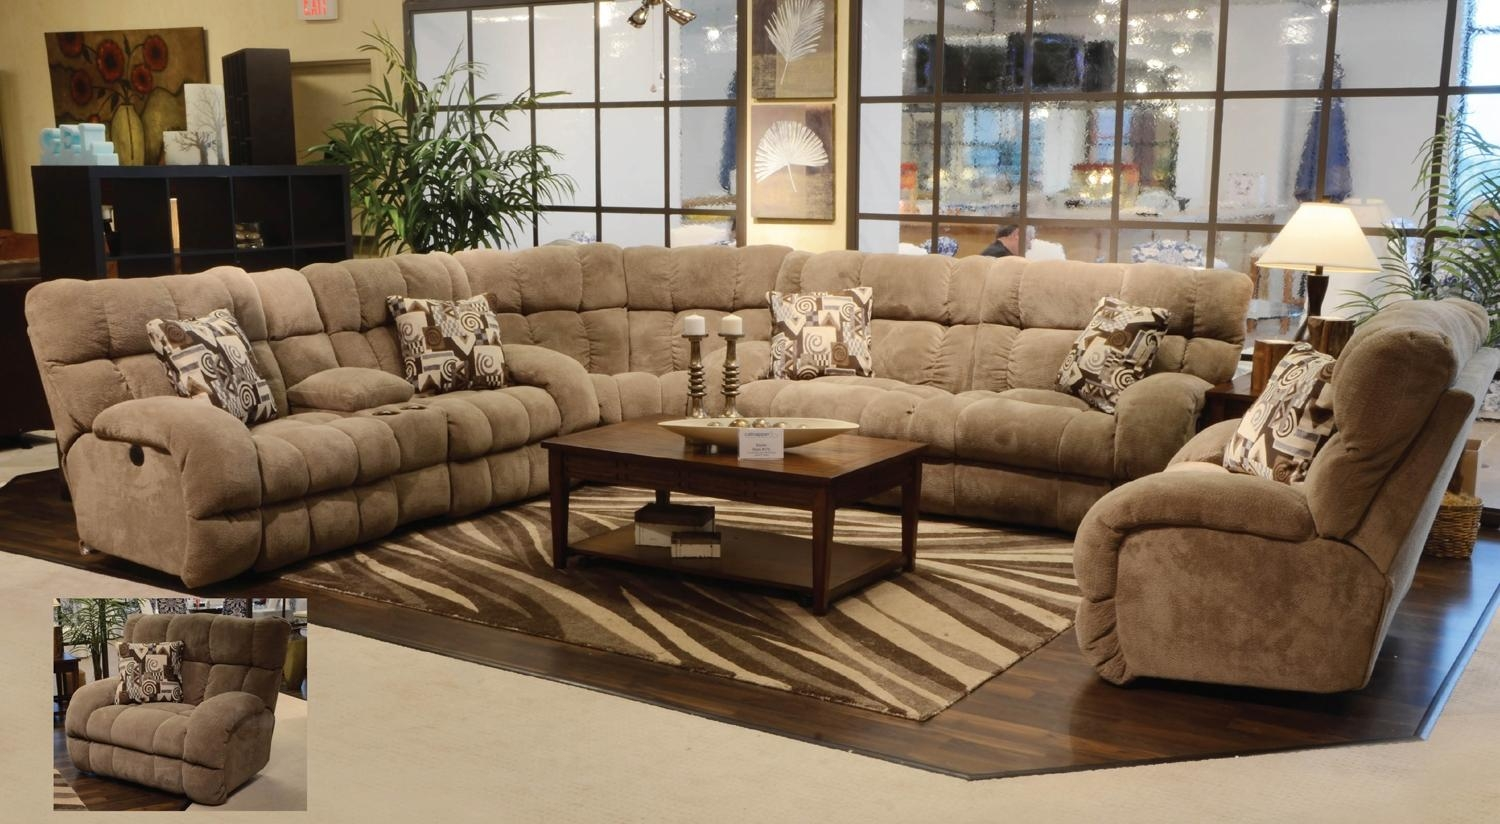 Sofas Center : Extra Large Sectional Sofa With Chaiselarge Sofas Throughout Extra Large Sectional Sofas (Image 10 of 15)